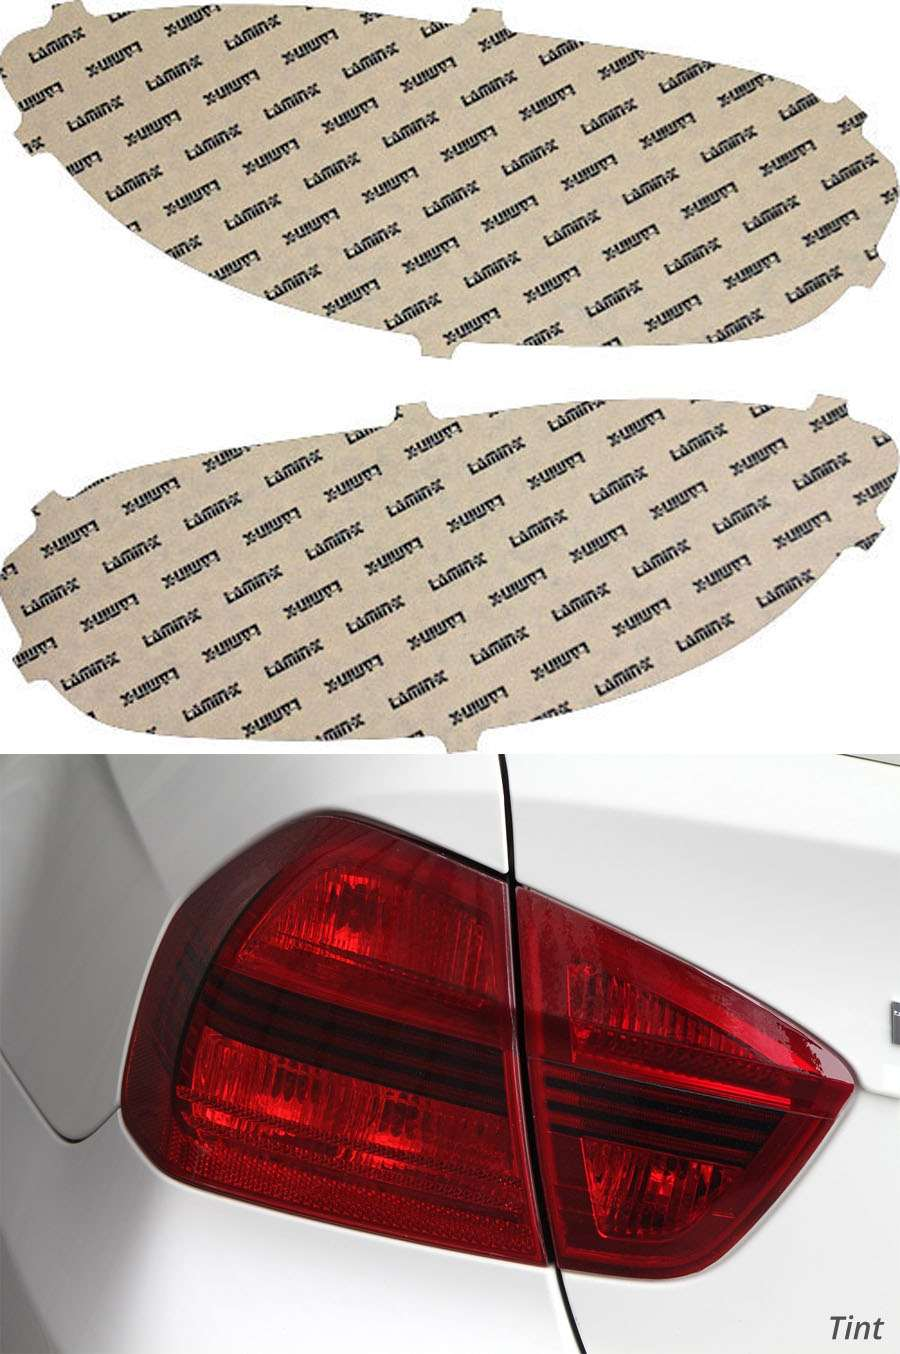 Lamin-X Tail Light Covers - Lamin-X P220